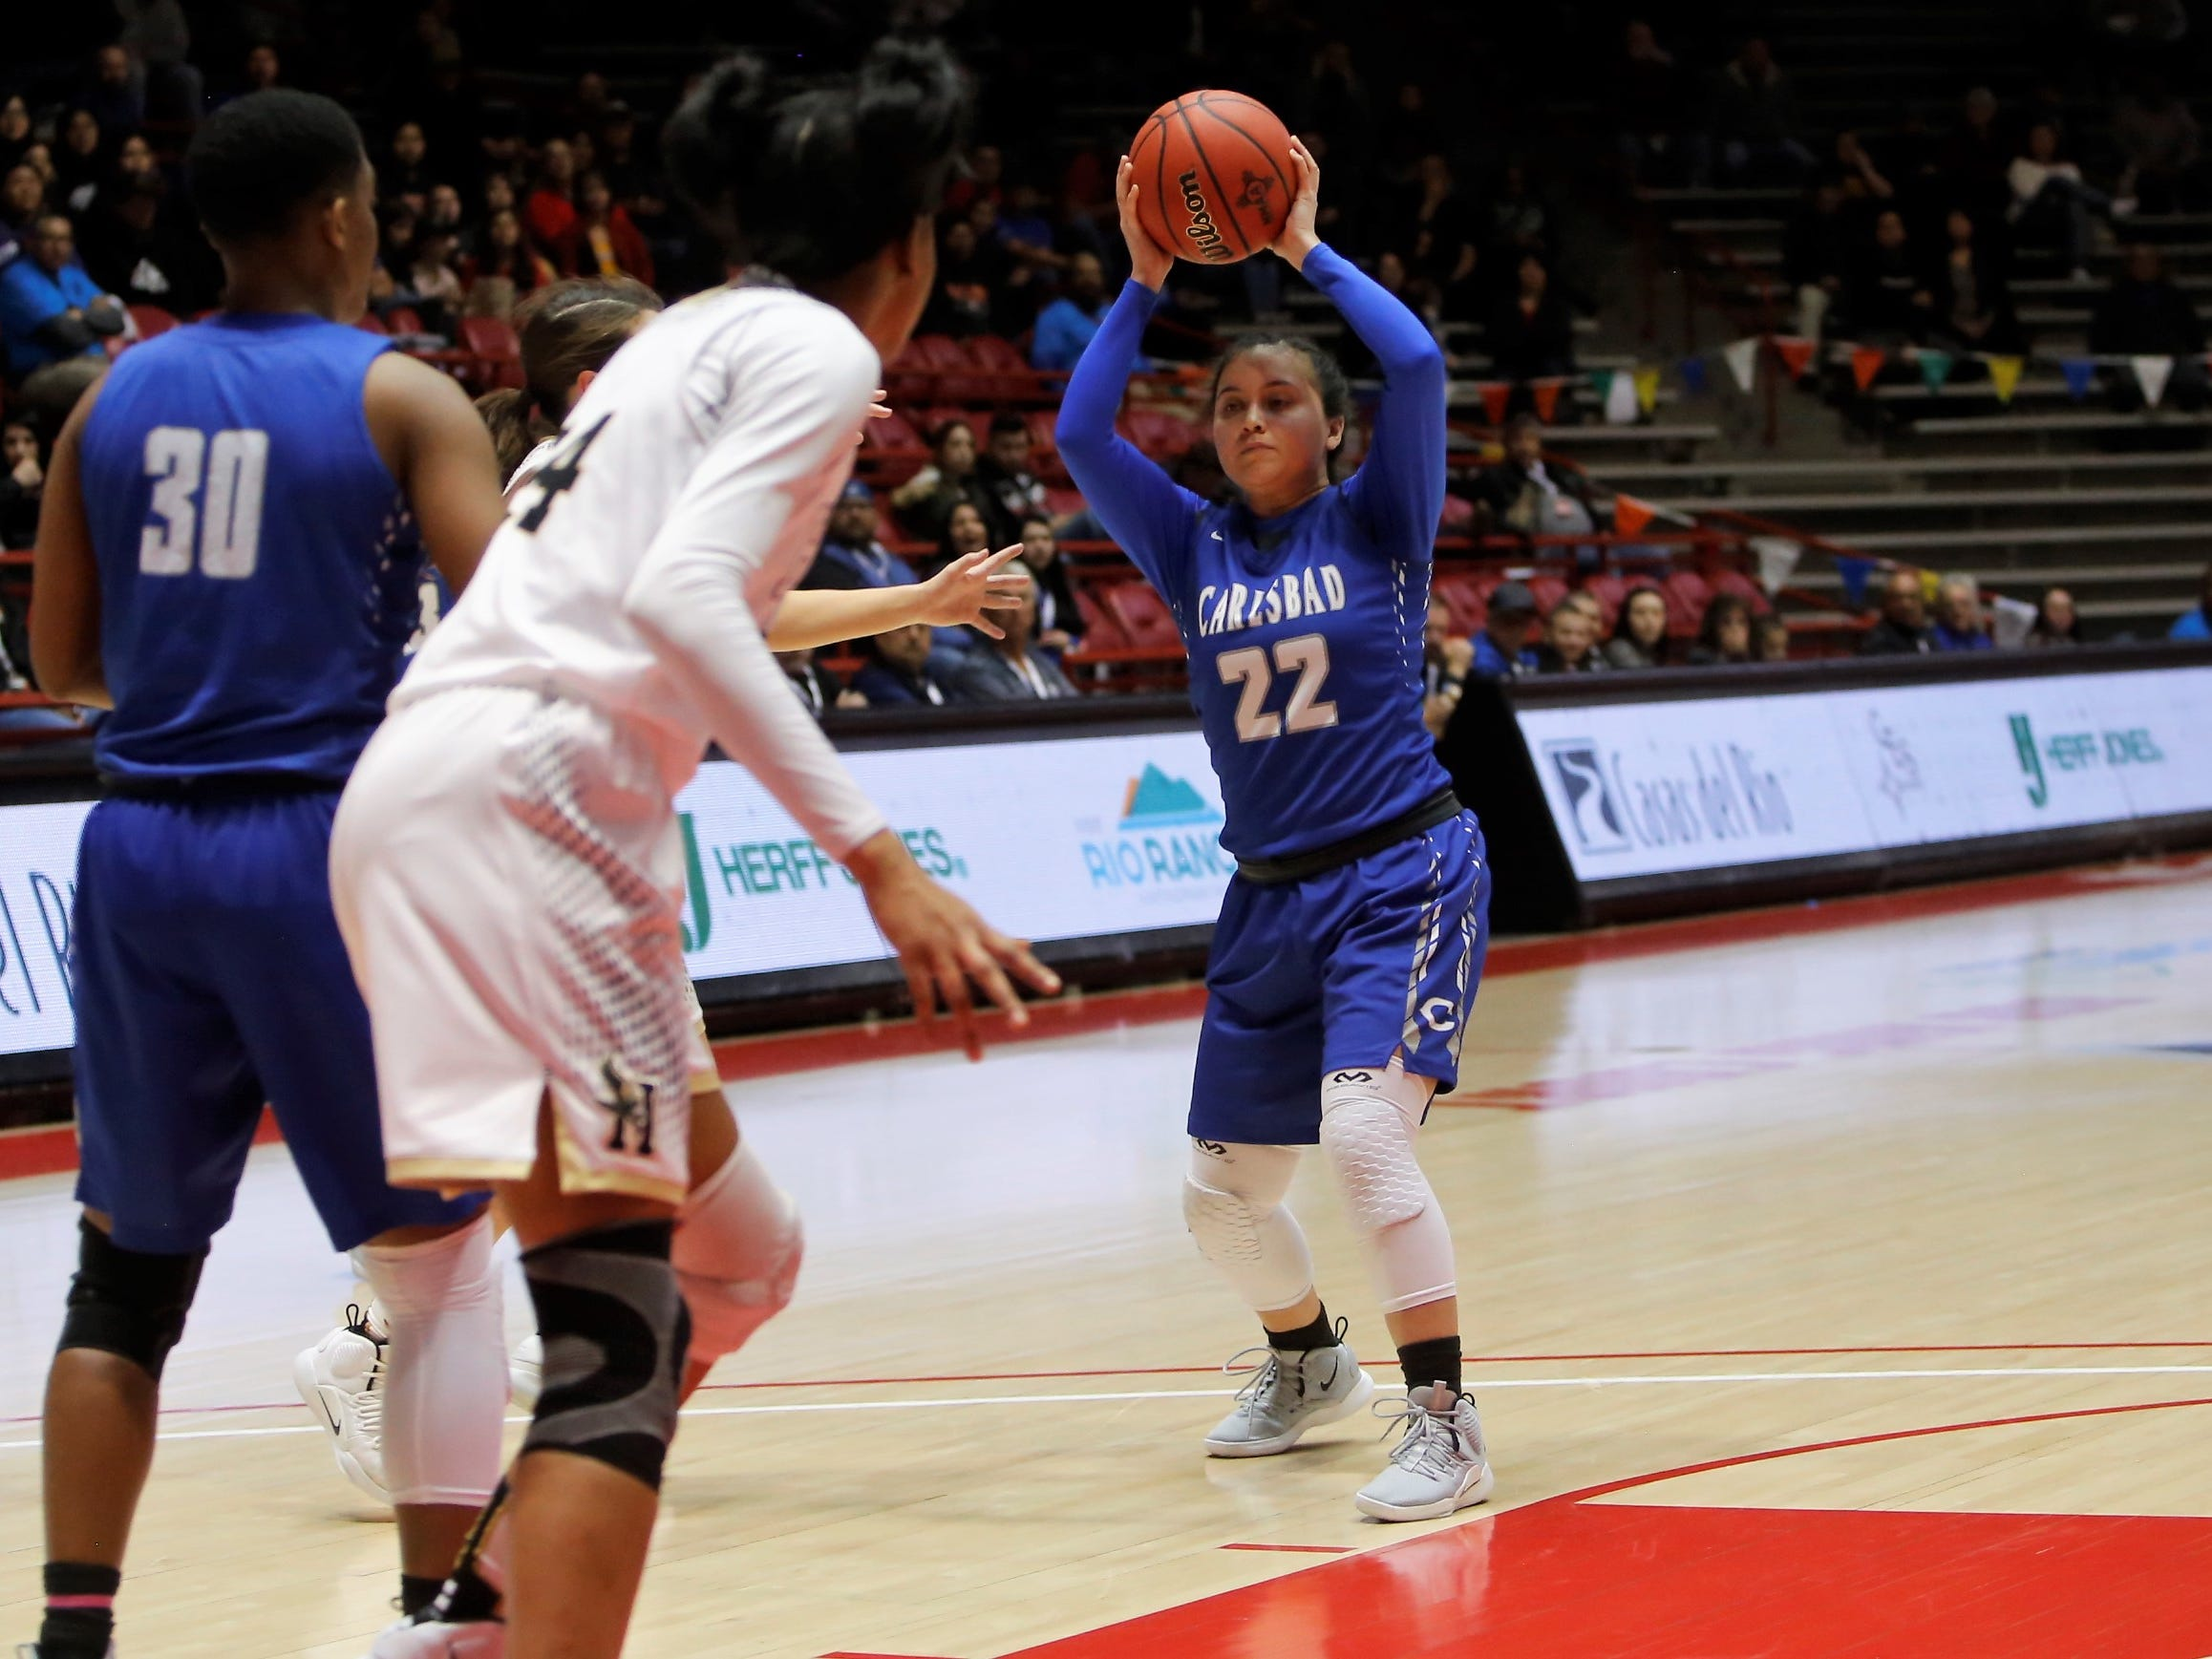 Carlsbad's Nyah Chacon looks to pass the ball to teammate Dayshaun Moore (30) against Hobbs during Thursday's 5A state semifinals at Dreamstyle Arena in Albuquerque.